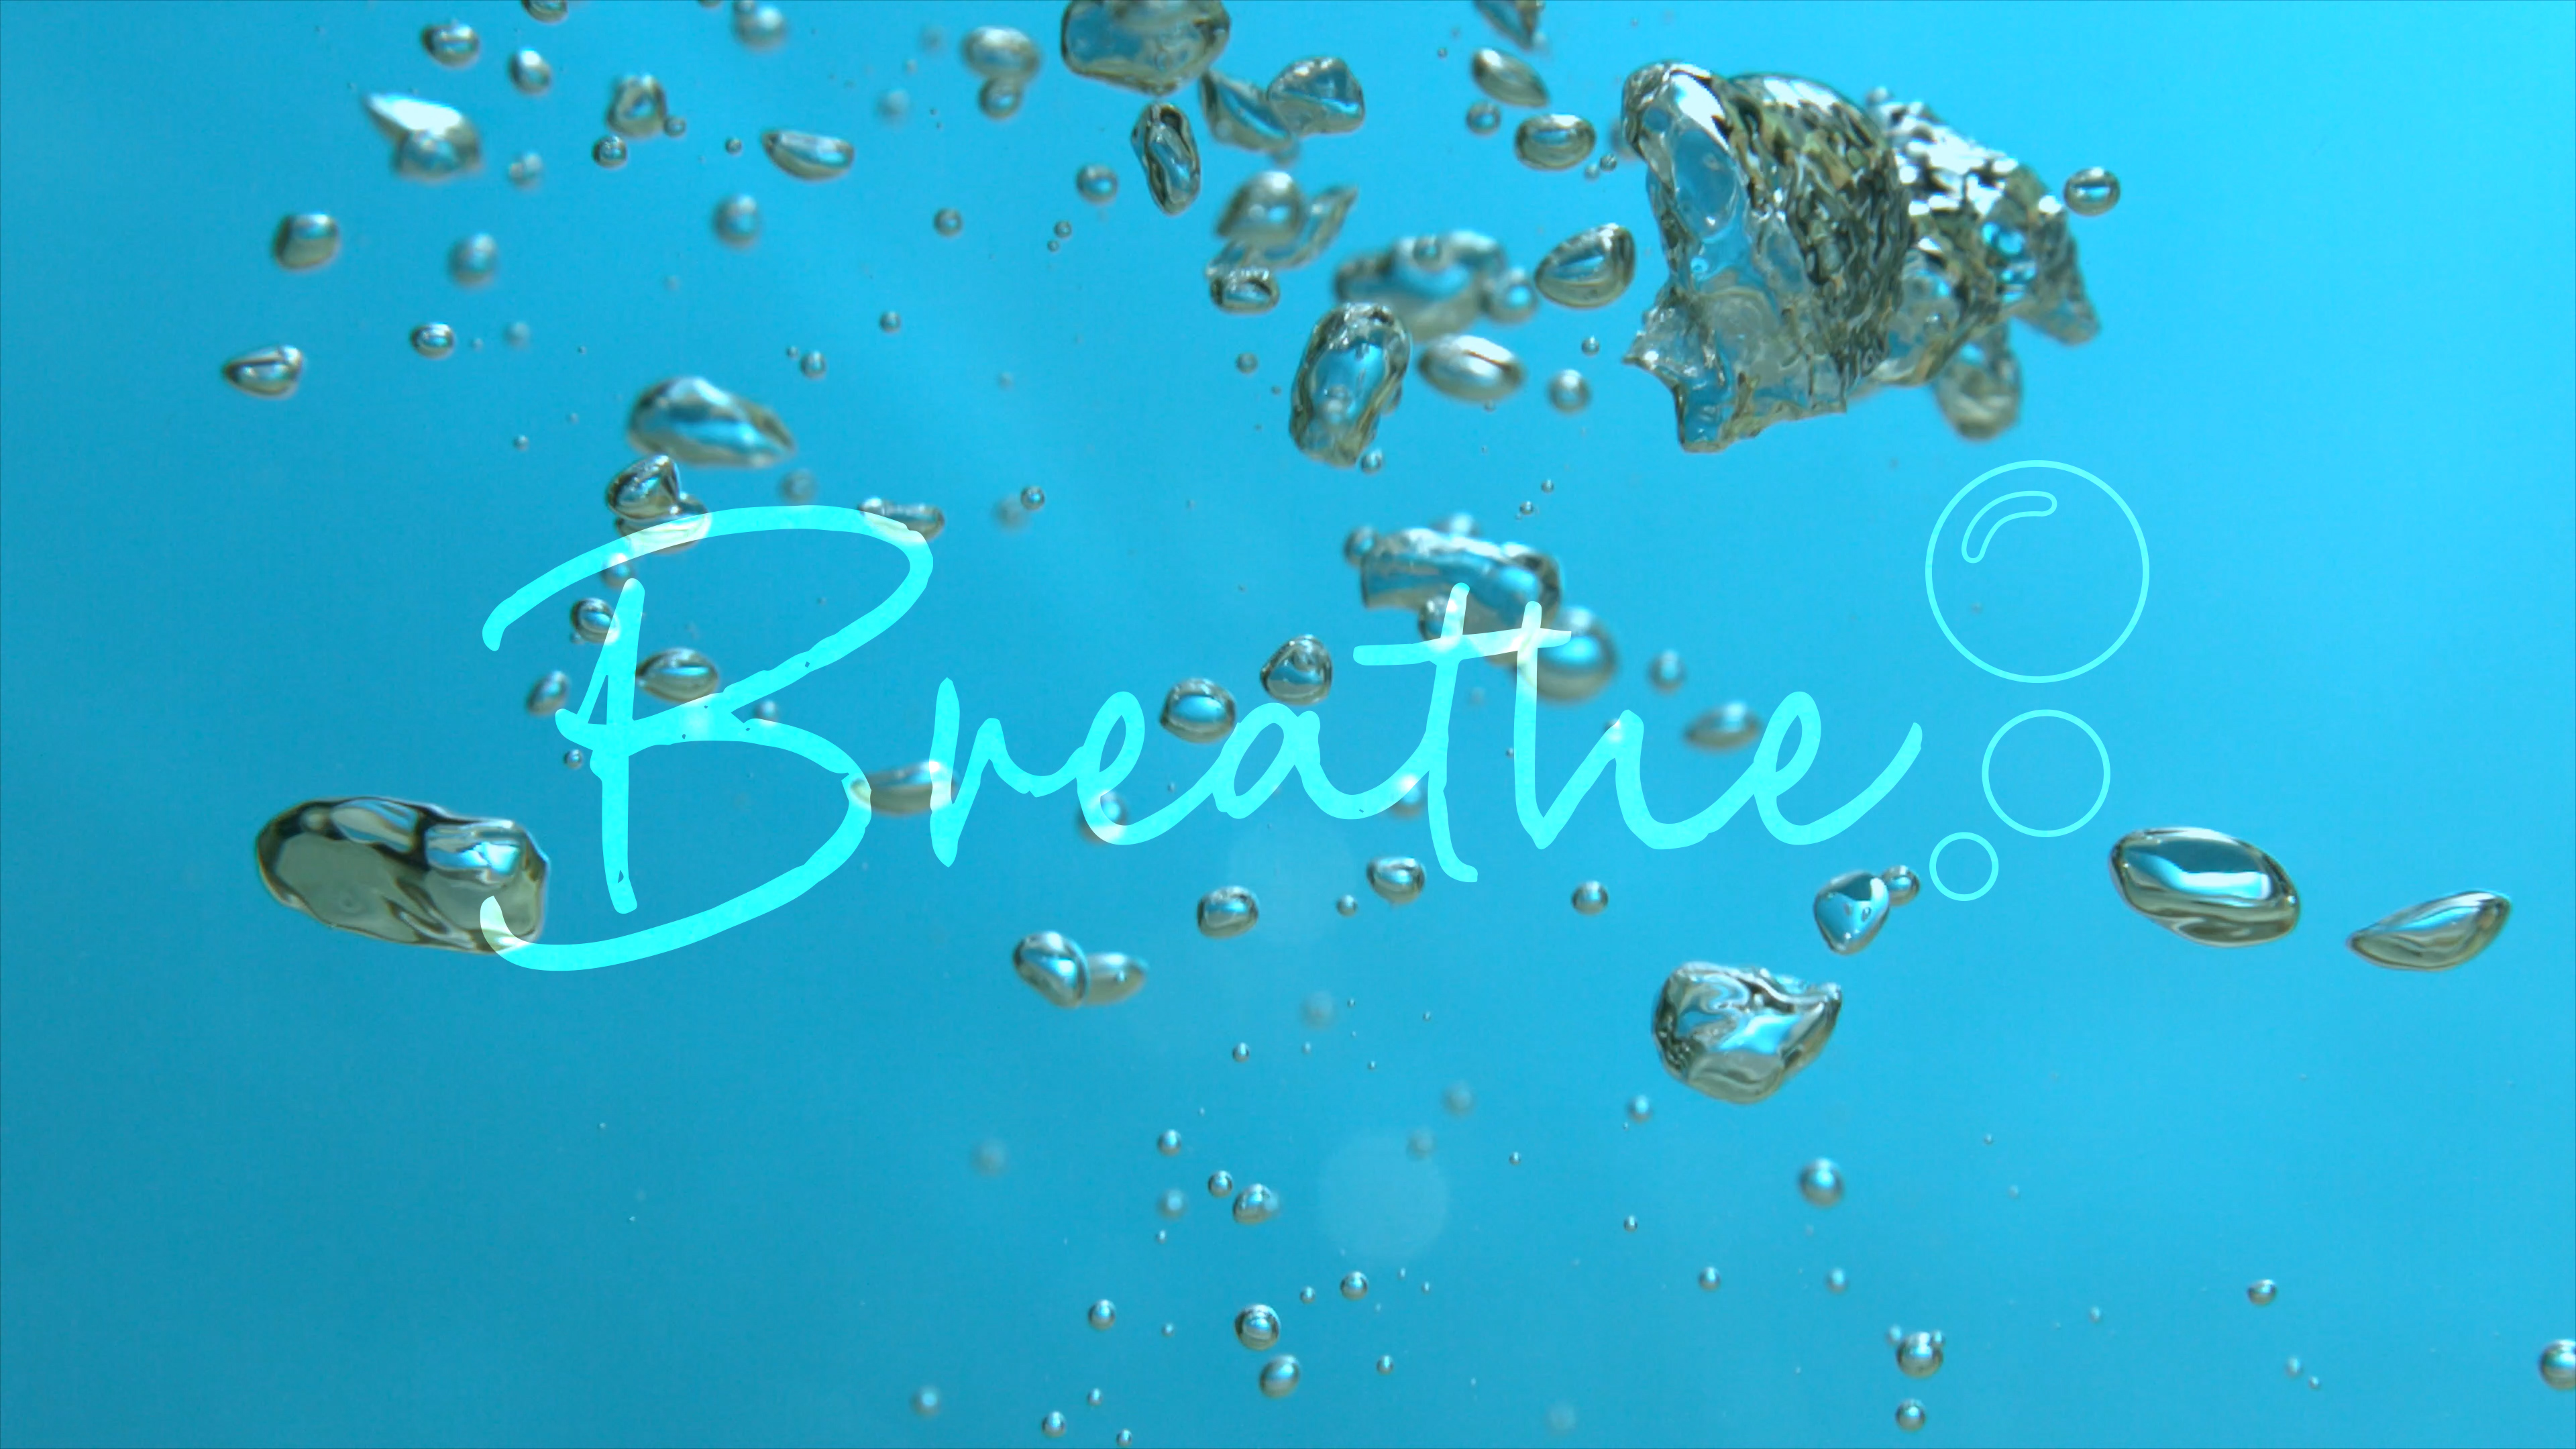 Breathe: Suicide Prevention – Trailer #2